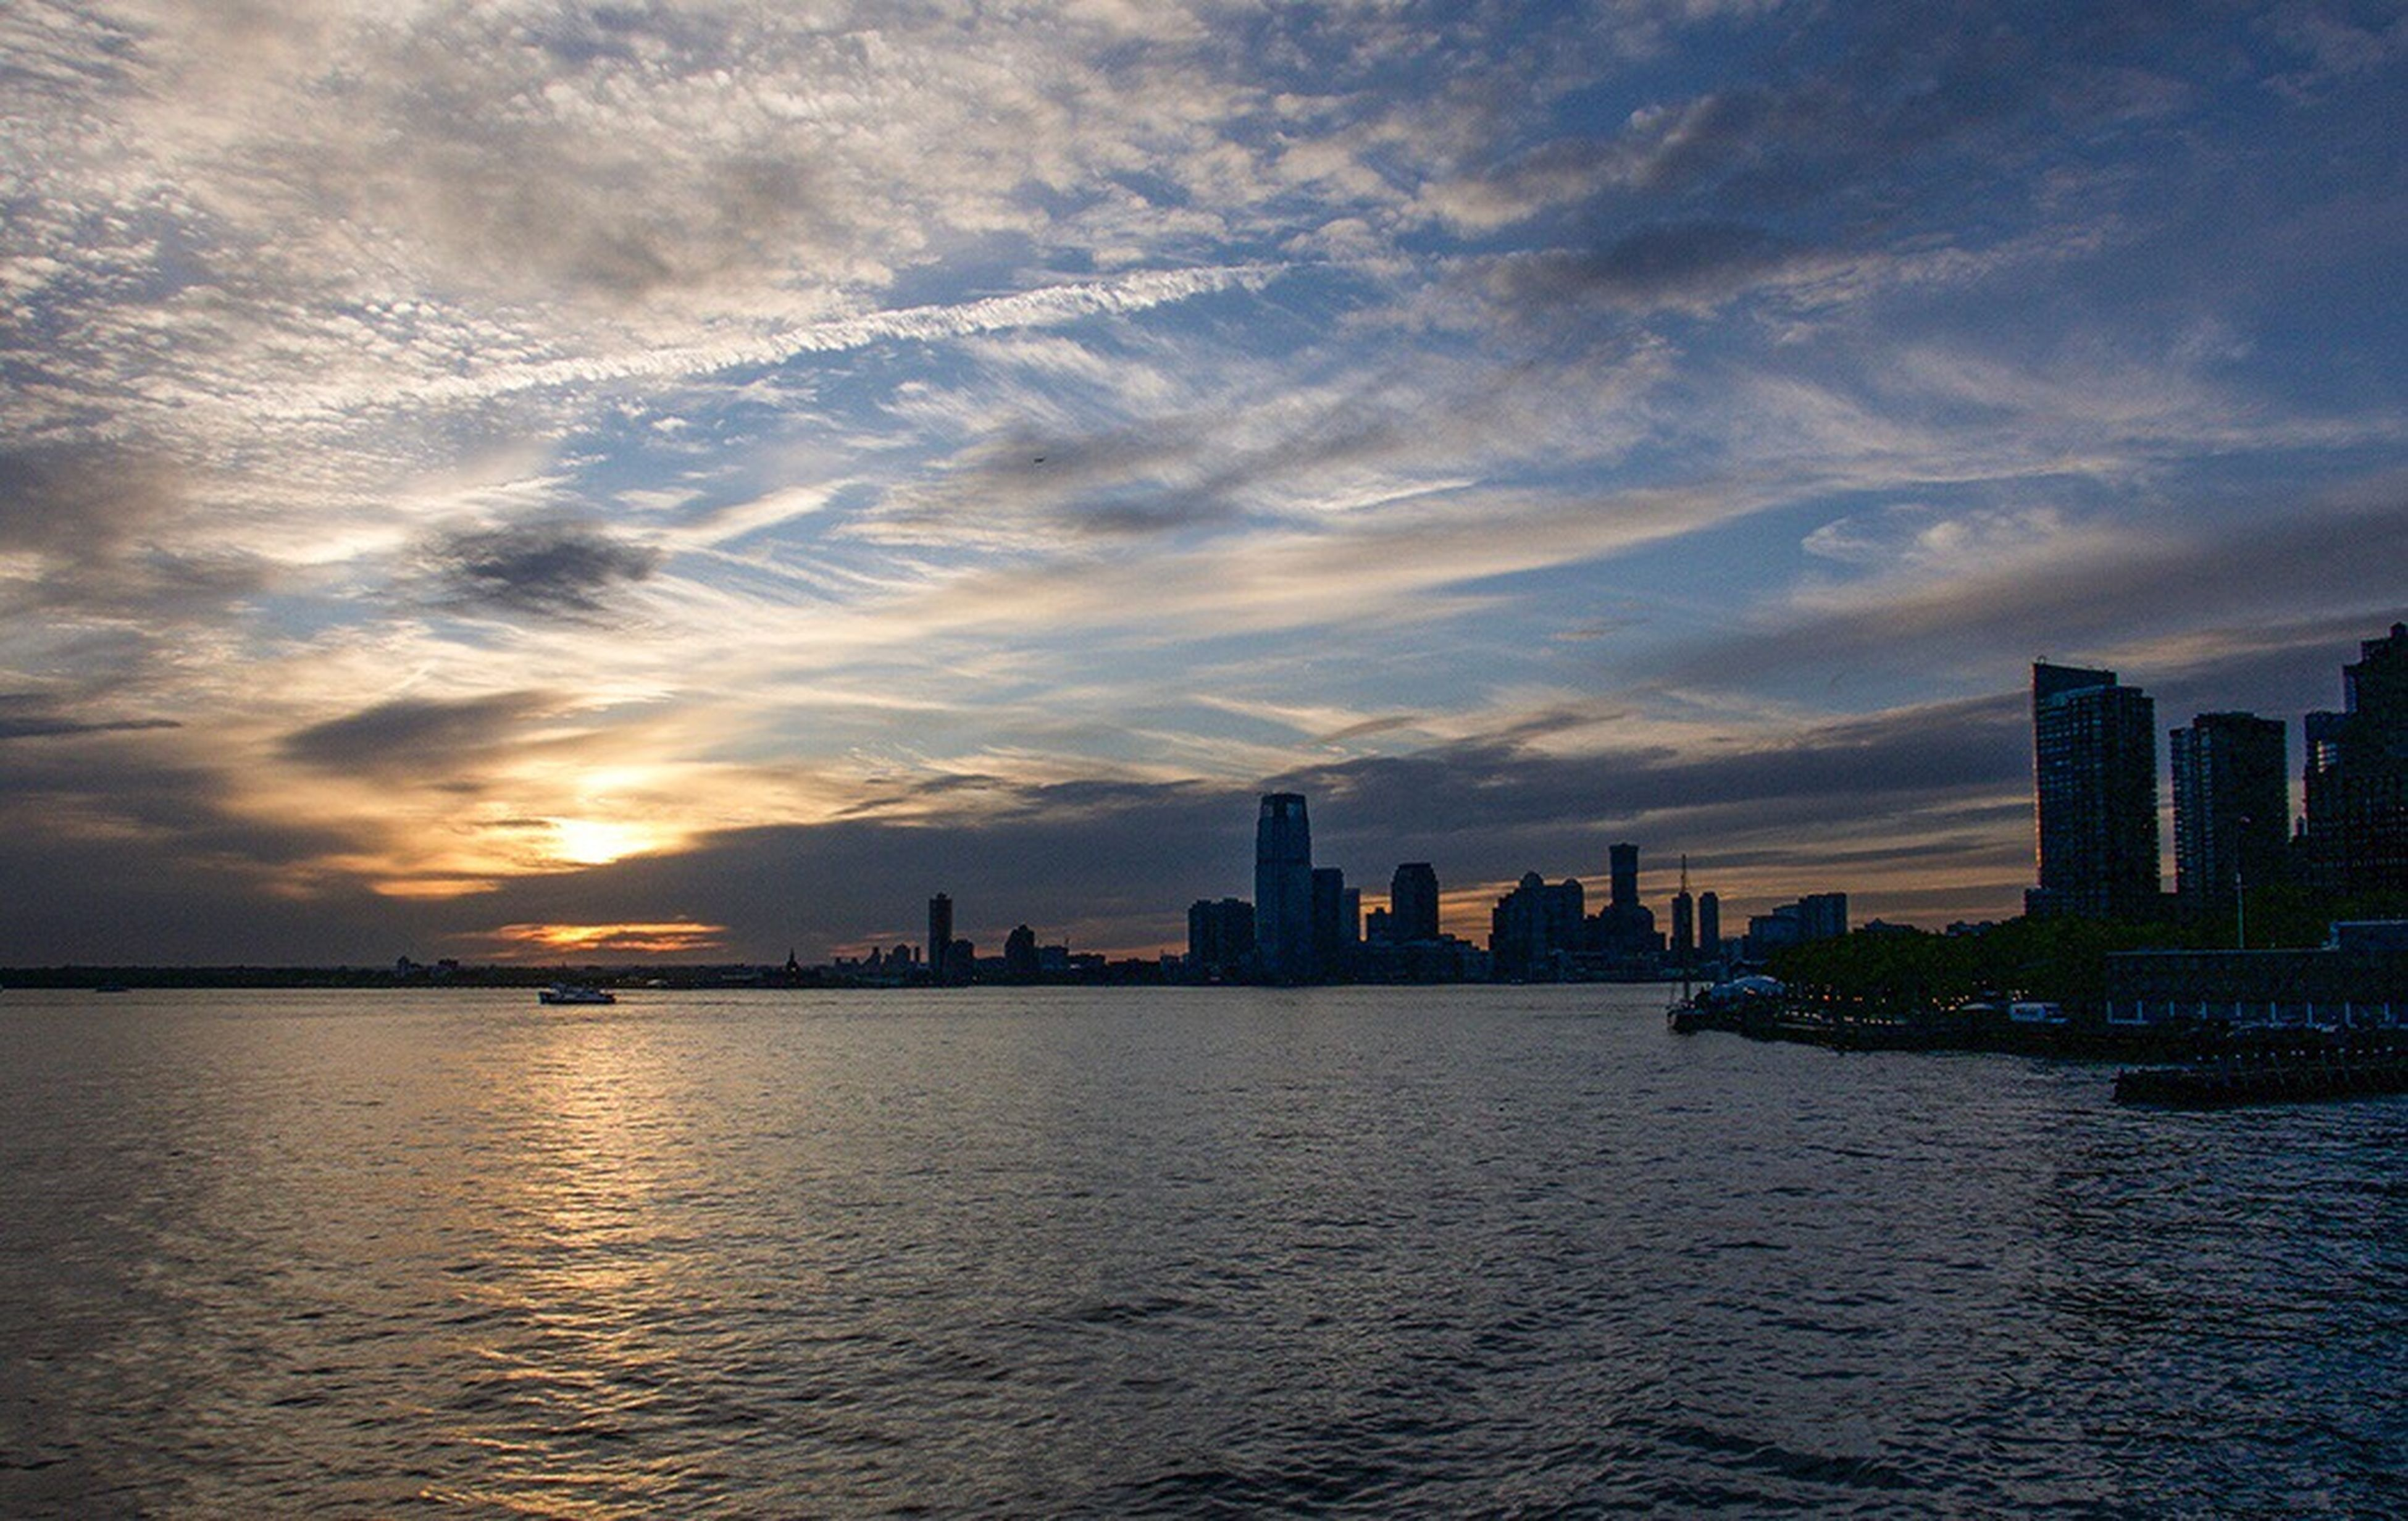 building exterior, sunset, architecture, built structure, sky, water, city, waterfront, cloud - sky, silhouette, sea, cityscape, skyscraper, cloud, urban skyline, scenics, river, tower, rippled, skyline